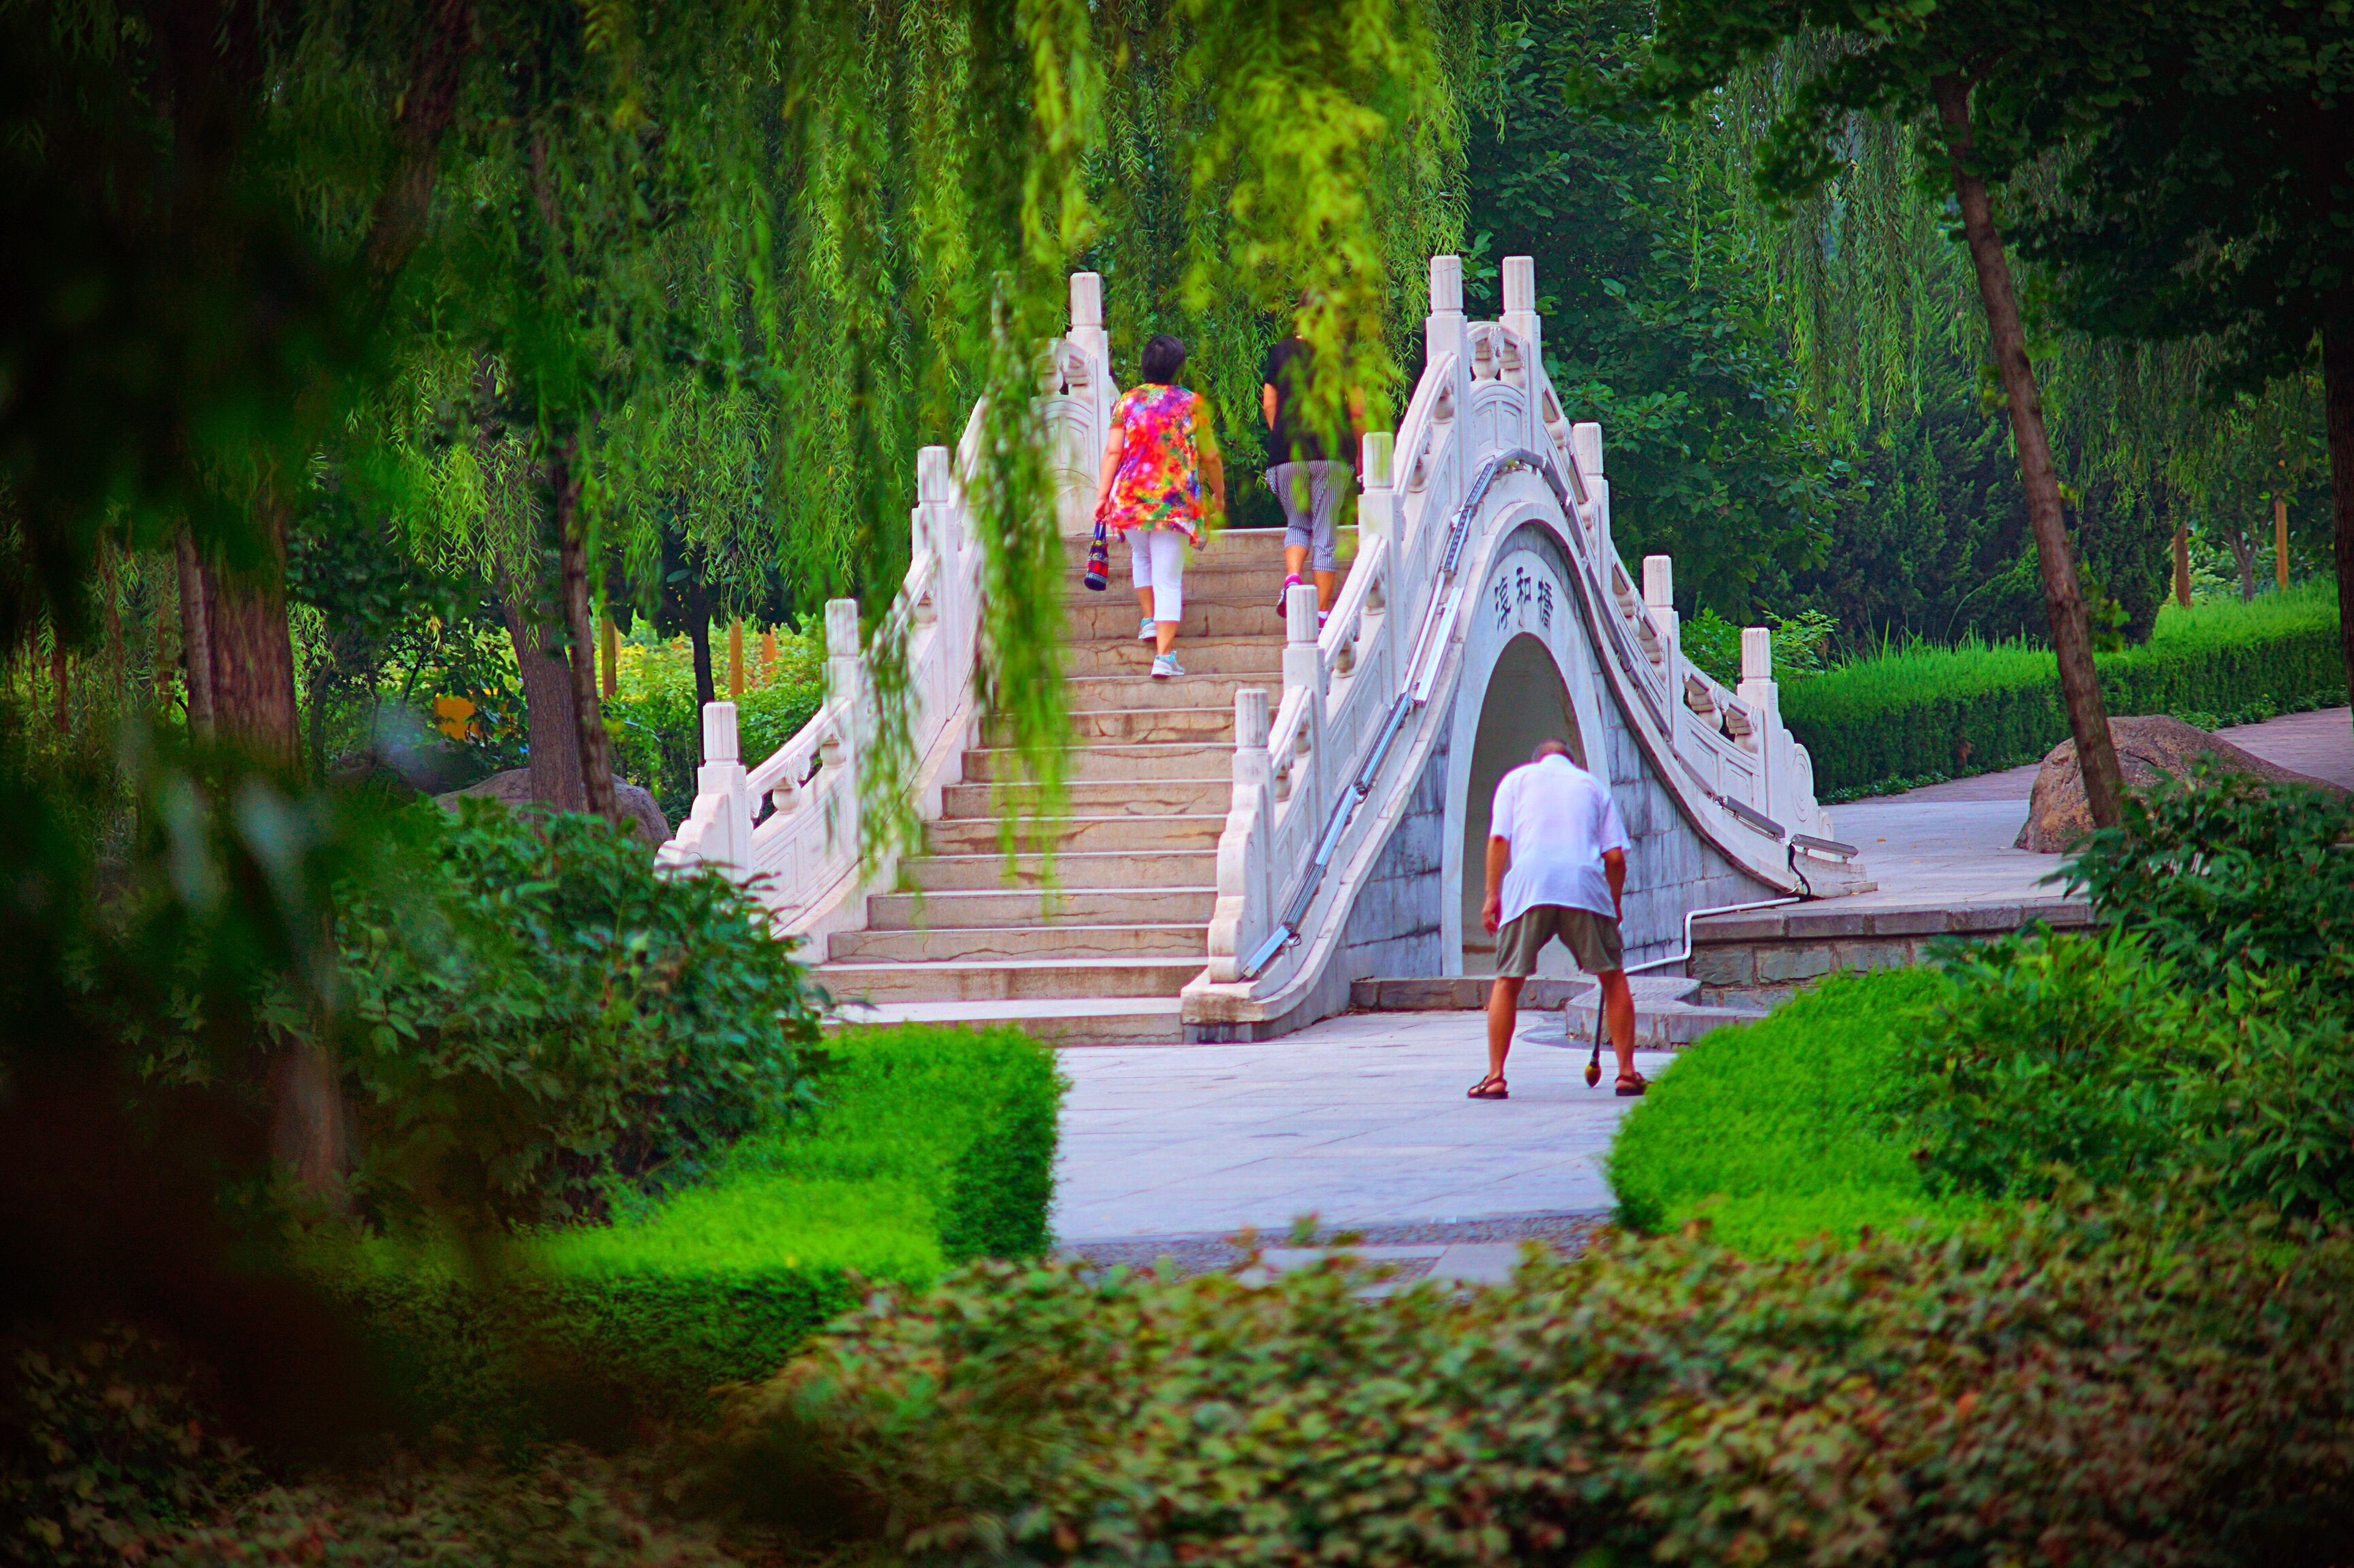 tree, built structure, architecture, plant, person, growth, park - man made space, green color, leisure activity, men, art and craft, religion, sculpture, lifestyles, day, outdoors, art, steps